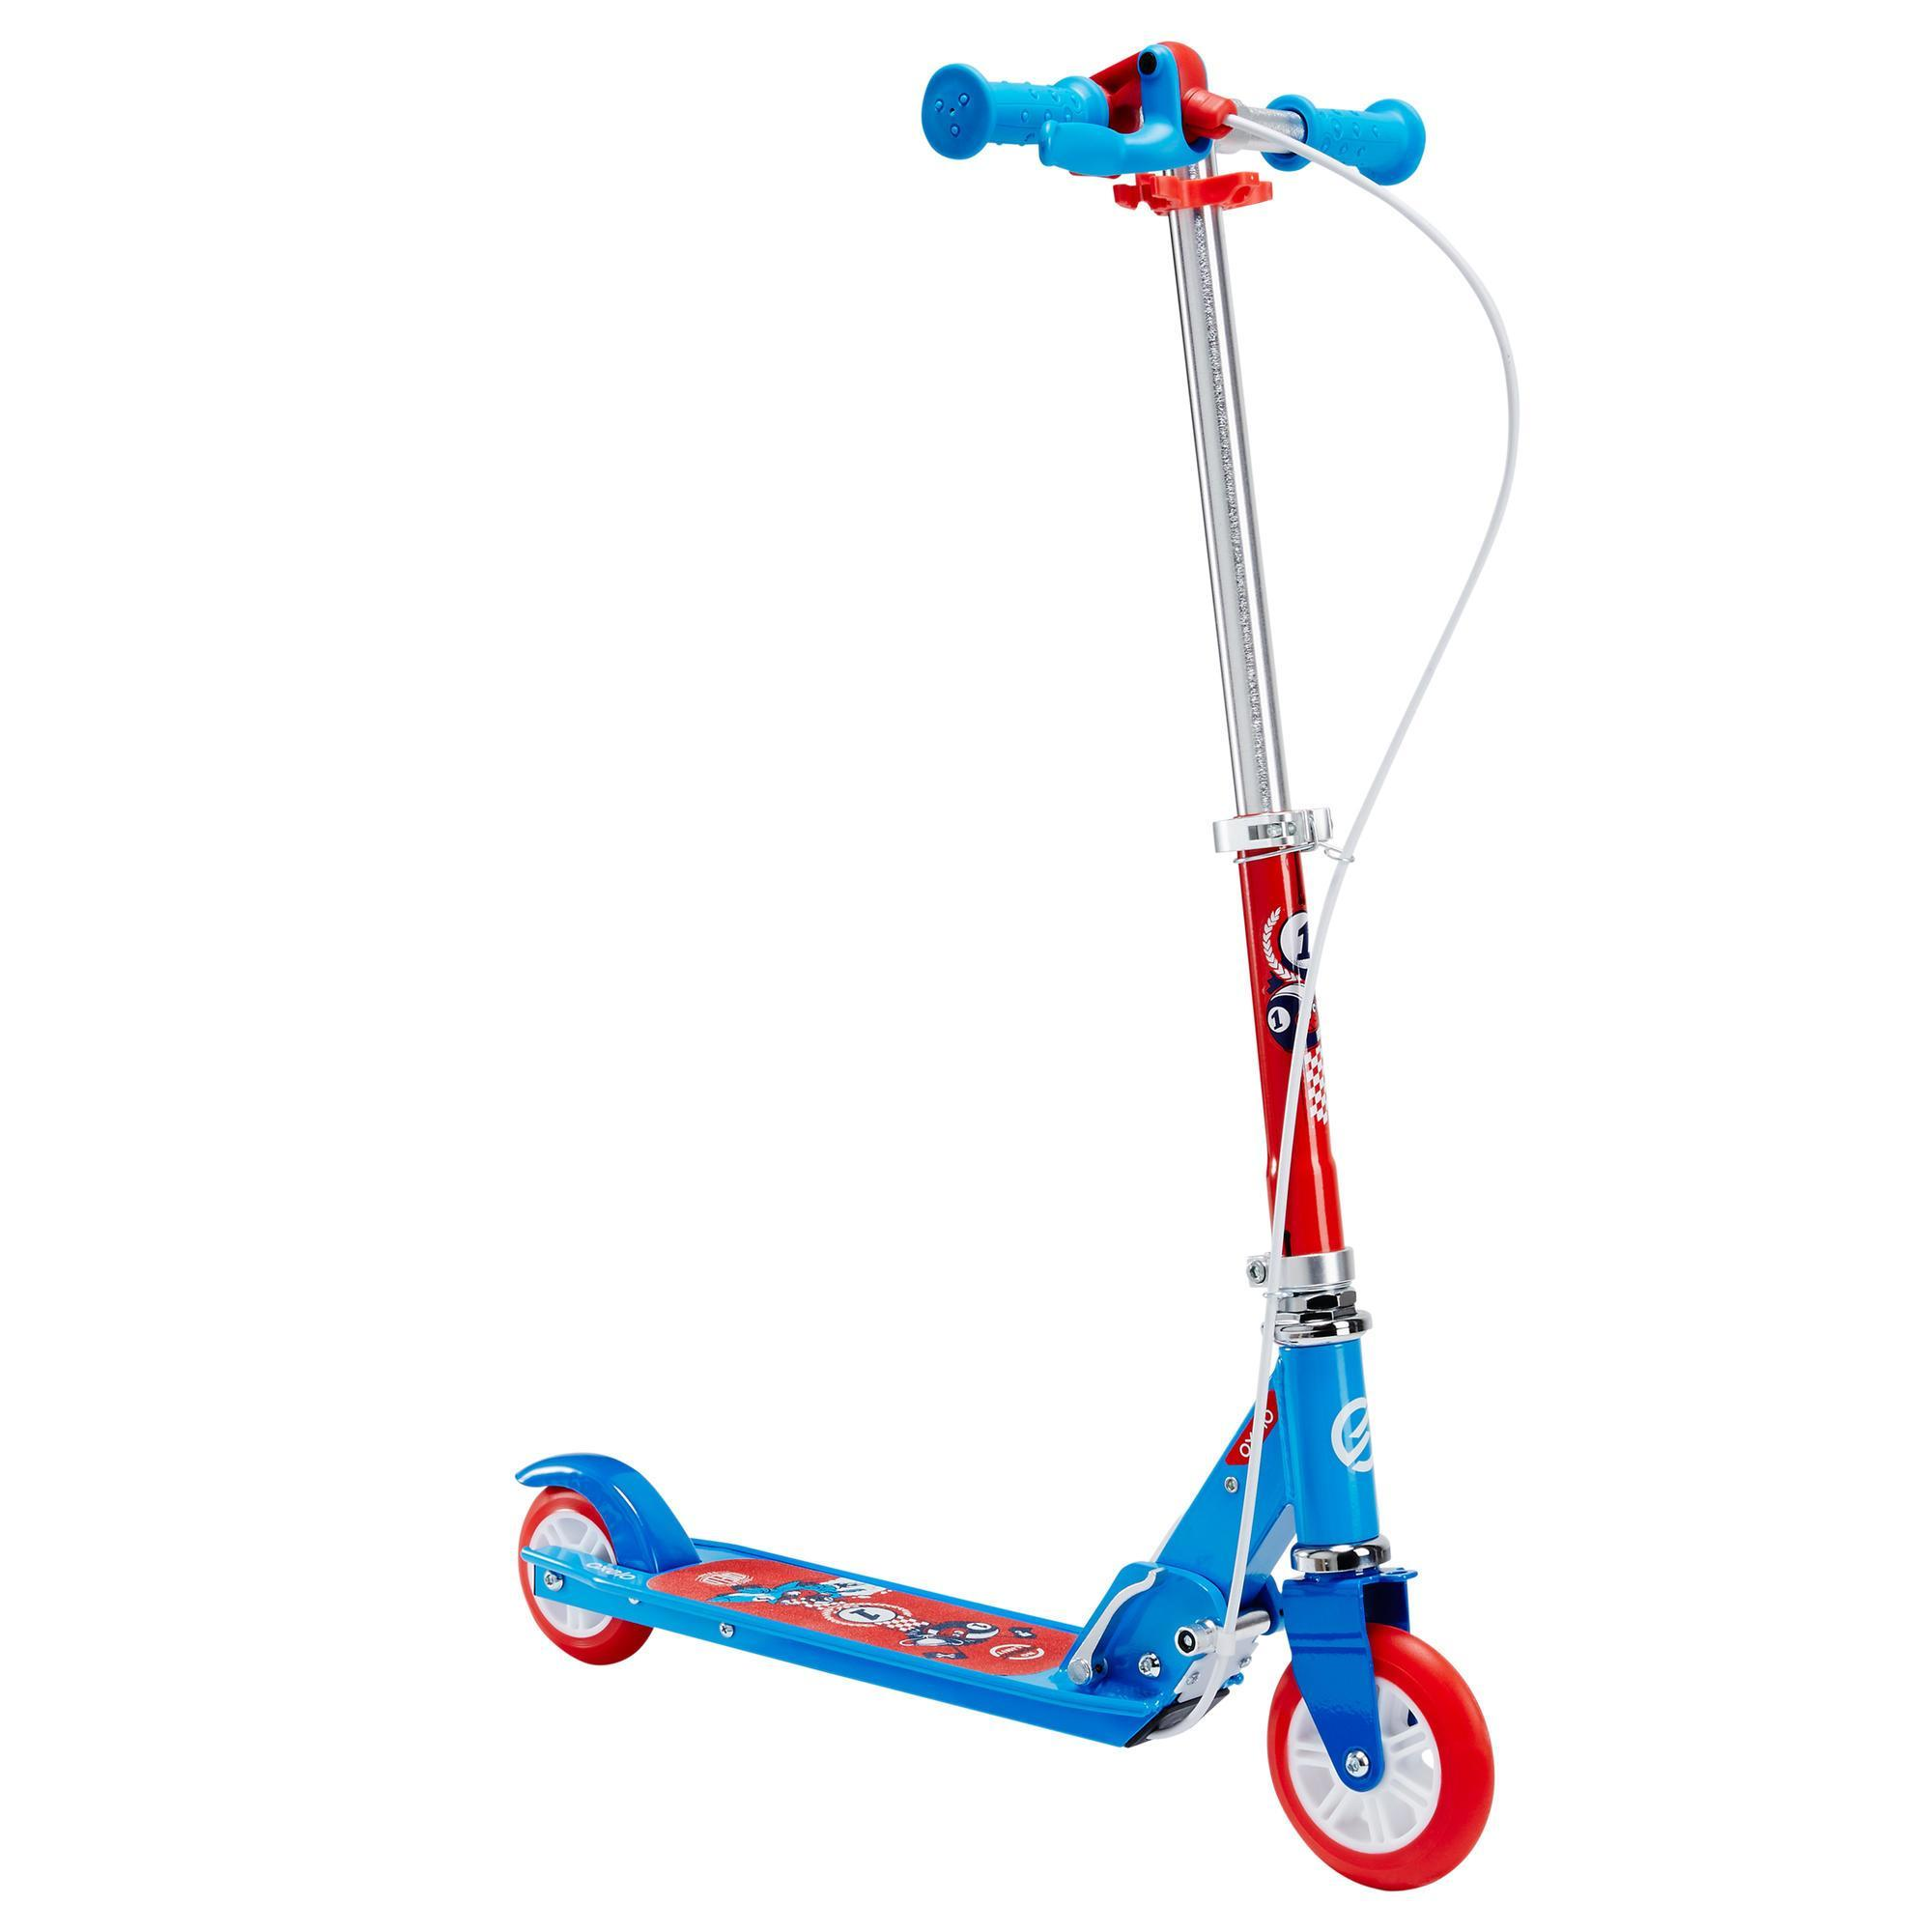 play 5 children 39 s scooter with brake blue oxelo. Black Bedroom Furniture Sets. Home Design Ideas